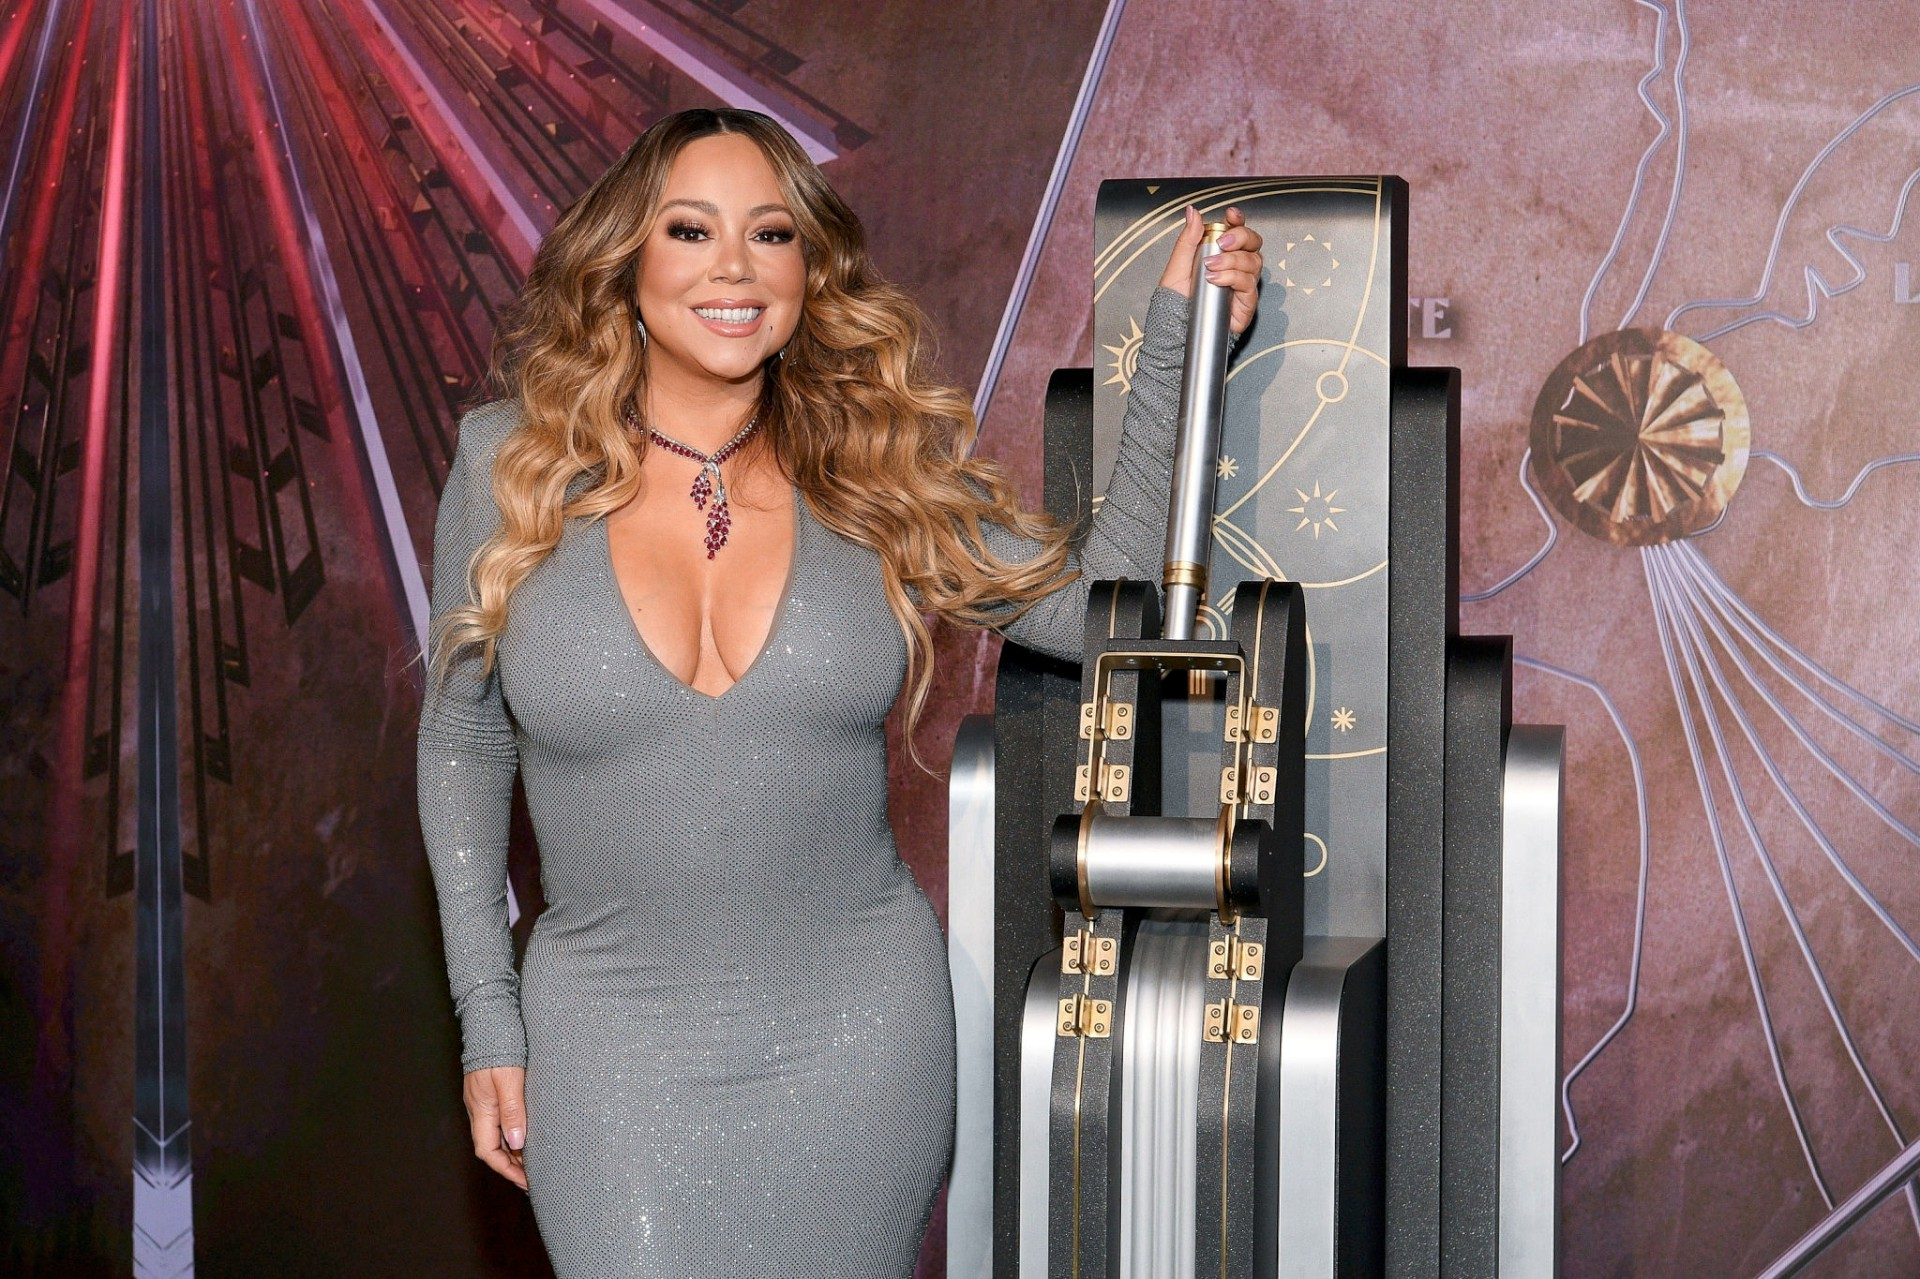 Mariah Carey - Sexy Big Boobs at Empire State Building in New York - Hot Celebs Home